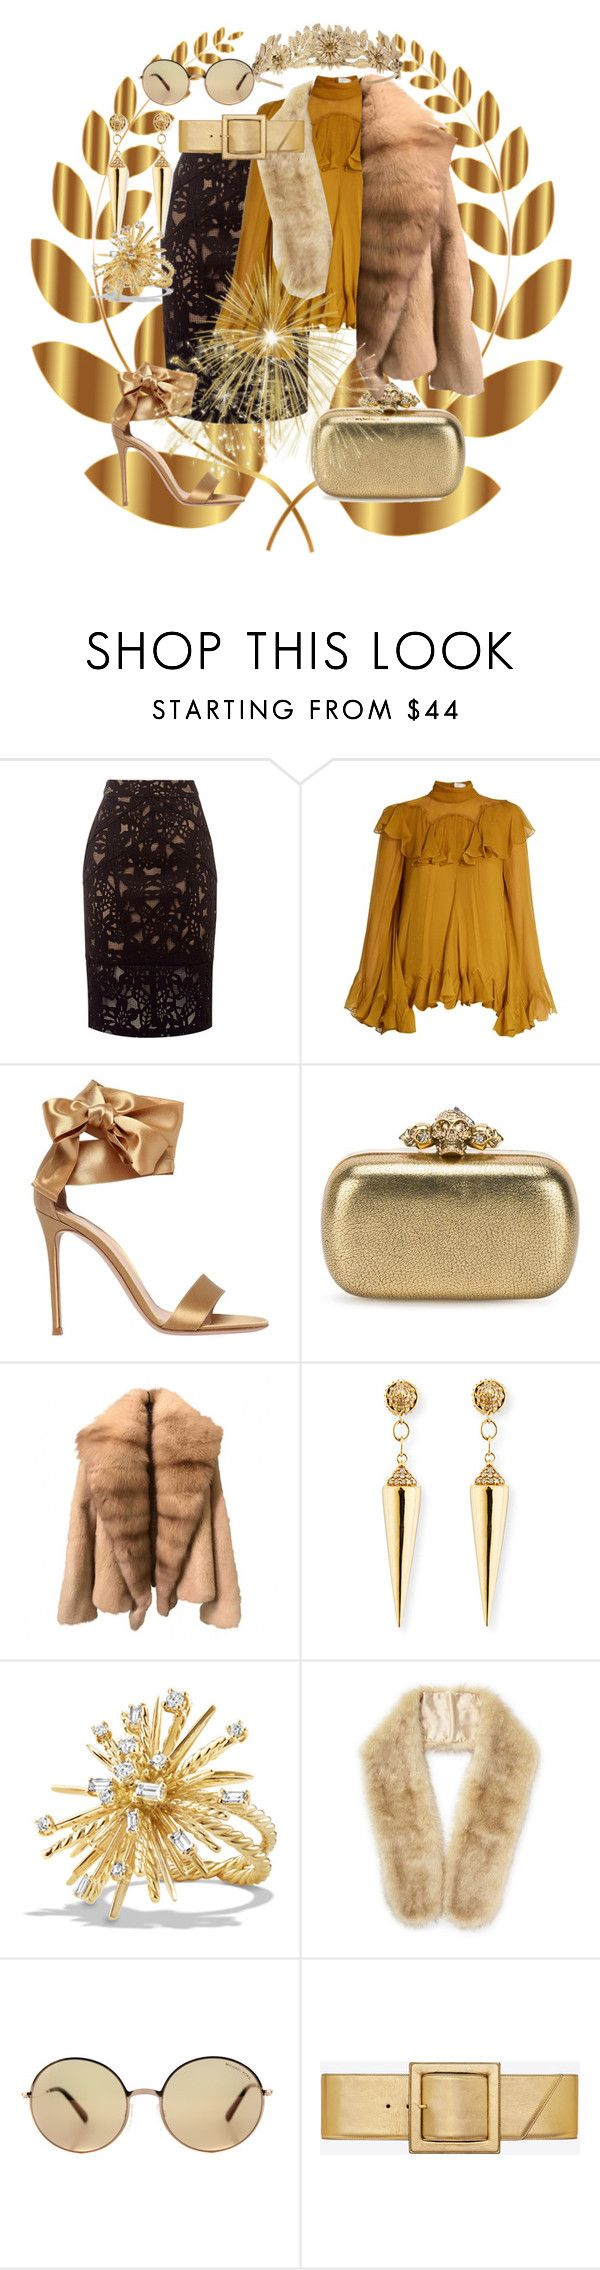 """""""Untitled #2737"""" by princhelle-mack ❤ liked on Polyvore featuring Laurel Wreath Collection, Chloé, Gianvito Rossi, Alexander McQueen, Sydney Evan, David Yurman, Miss Selfridge, Michael Kors and Yves Saint Laurent"""